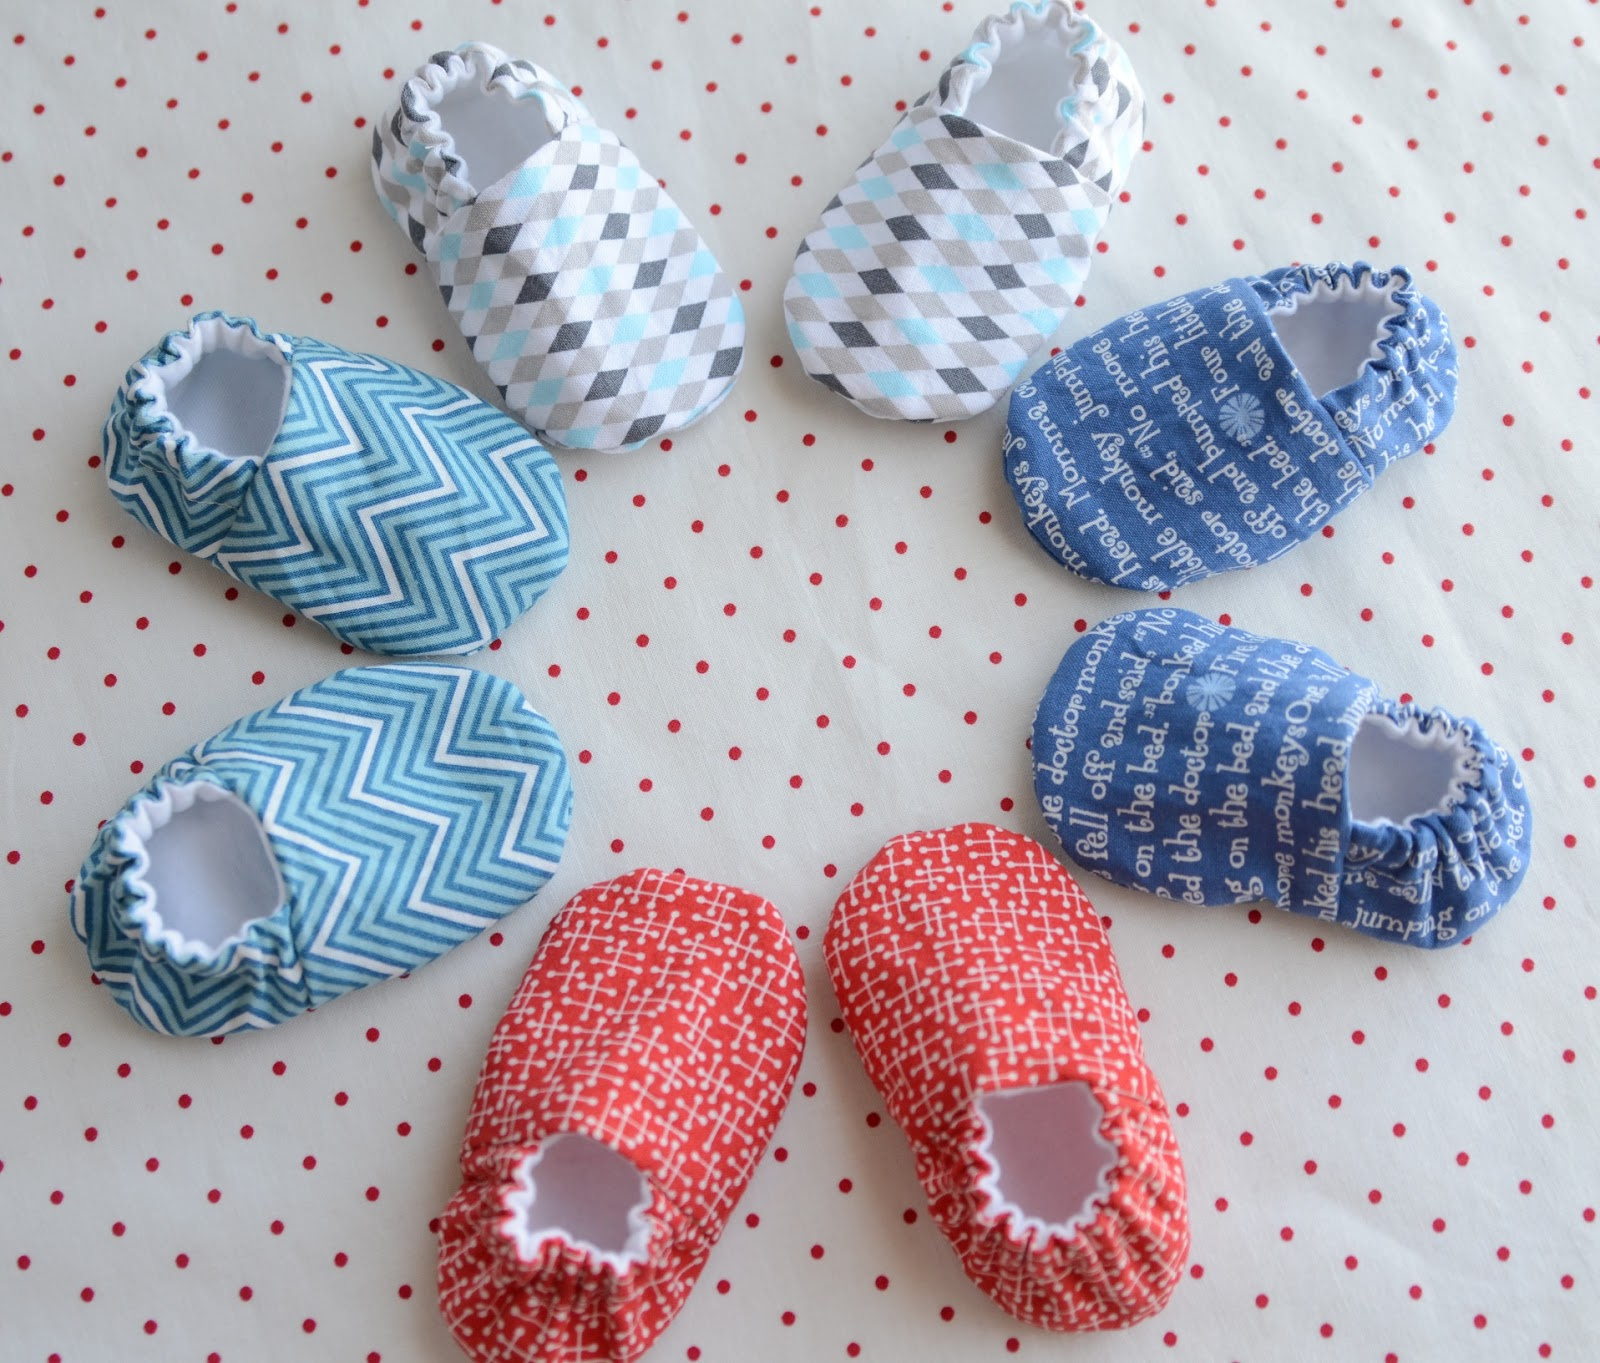 Hyacinth Quilt Designs making baby shoes